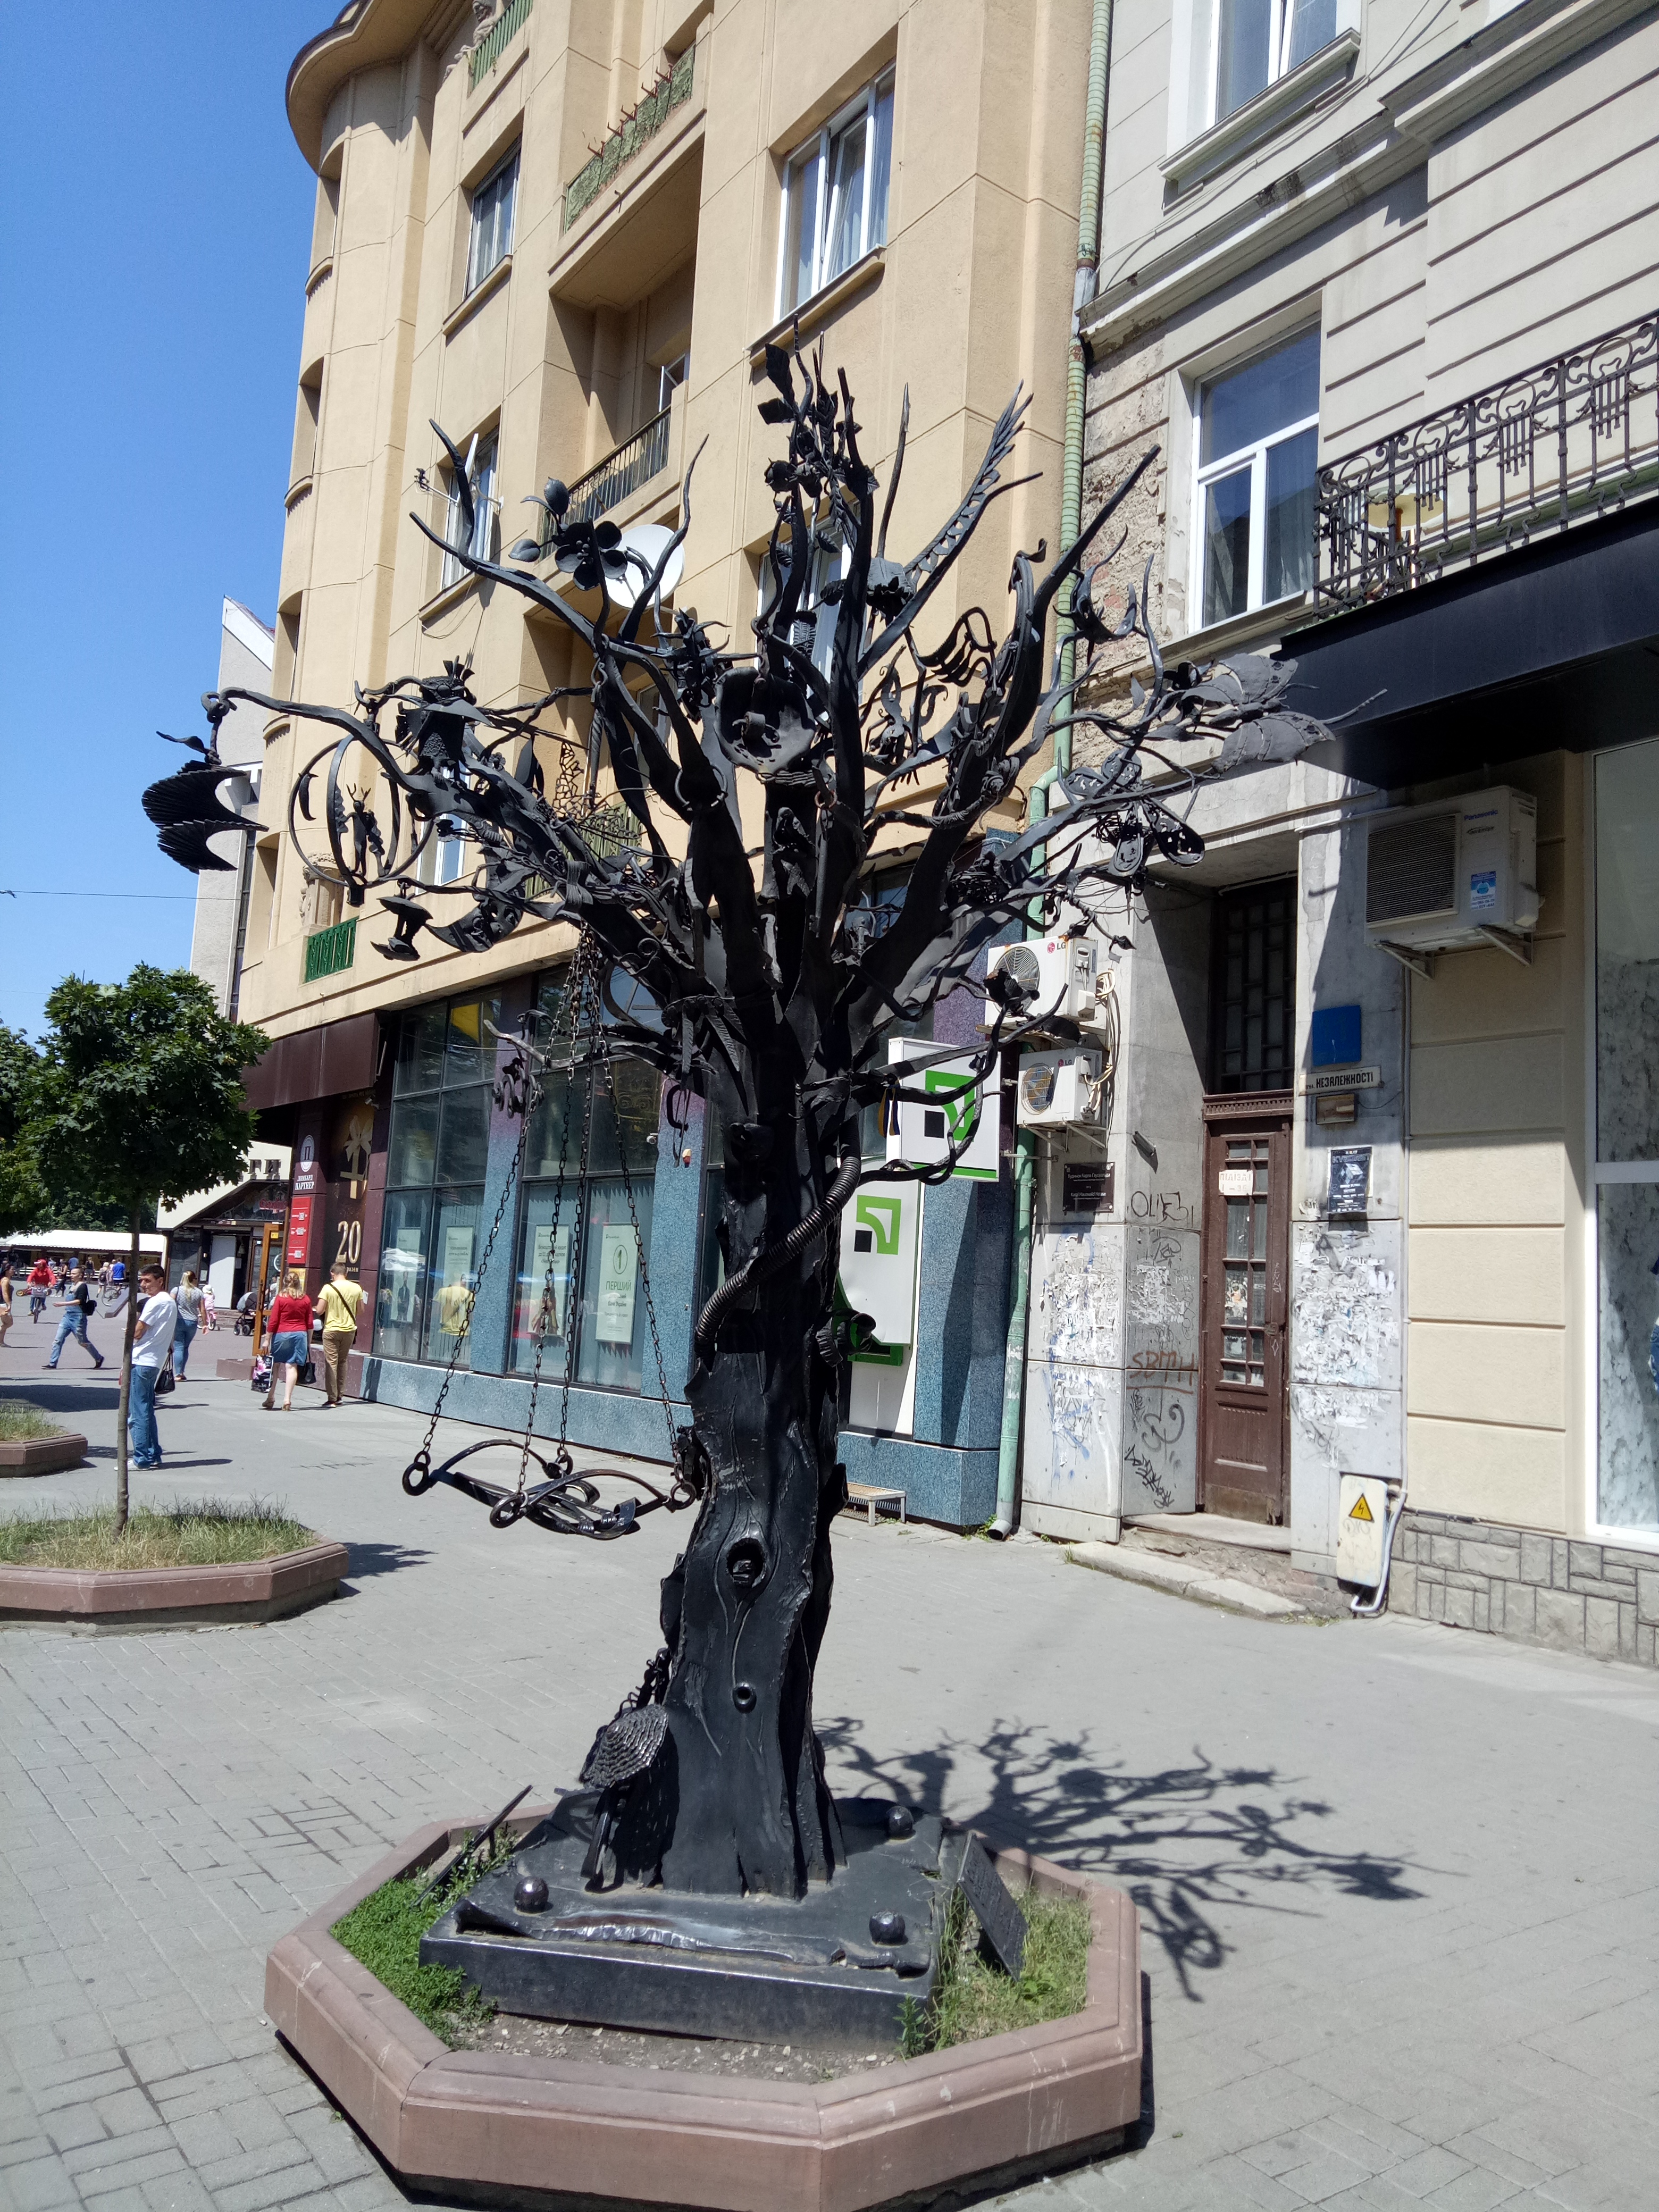 Travel for Cause ---- Ivano-Frankivsk . In Square (Rynok---Bazaar), Steel Tree represents that iron becomes wax when it comes in hands of brave men.